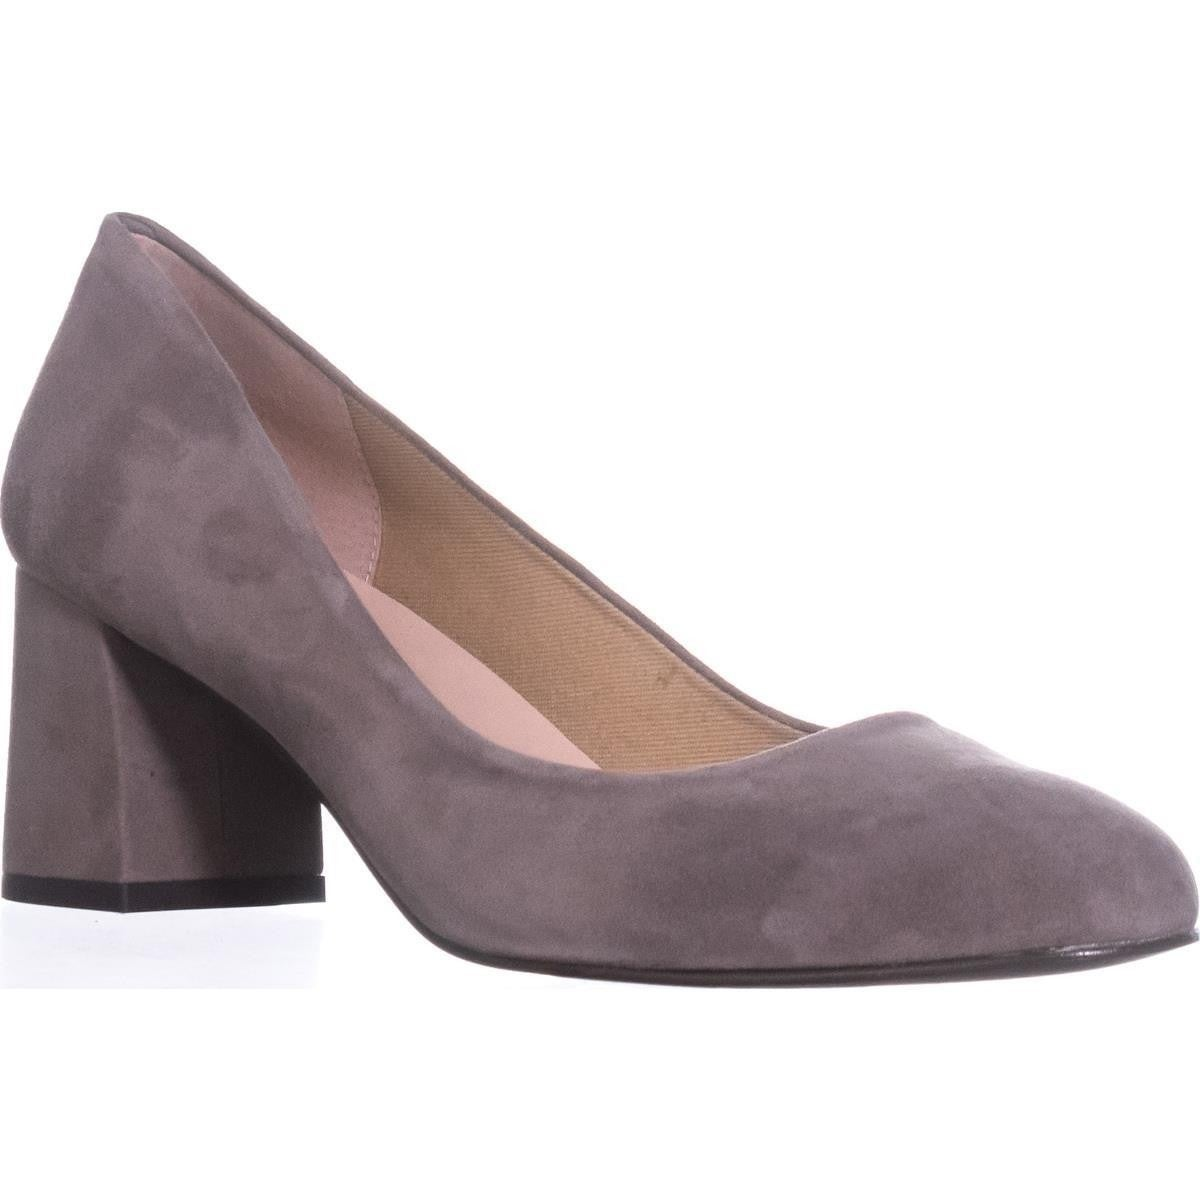 7bad2387396 Shop French Sole Womens TRANCE Suede Round Toe Classic Pumps - Free  Shipping Today - Overstock - 21479504